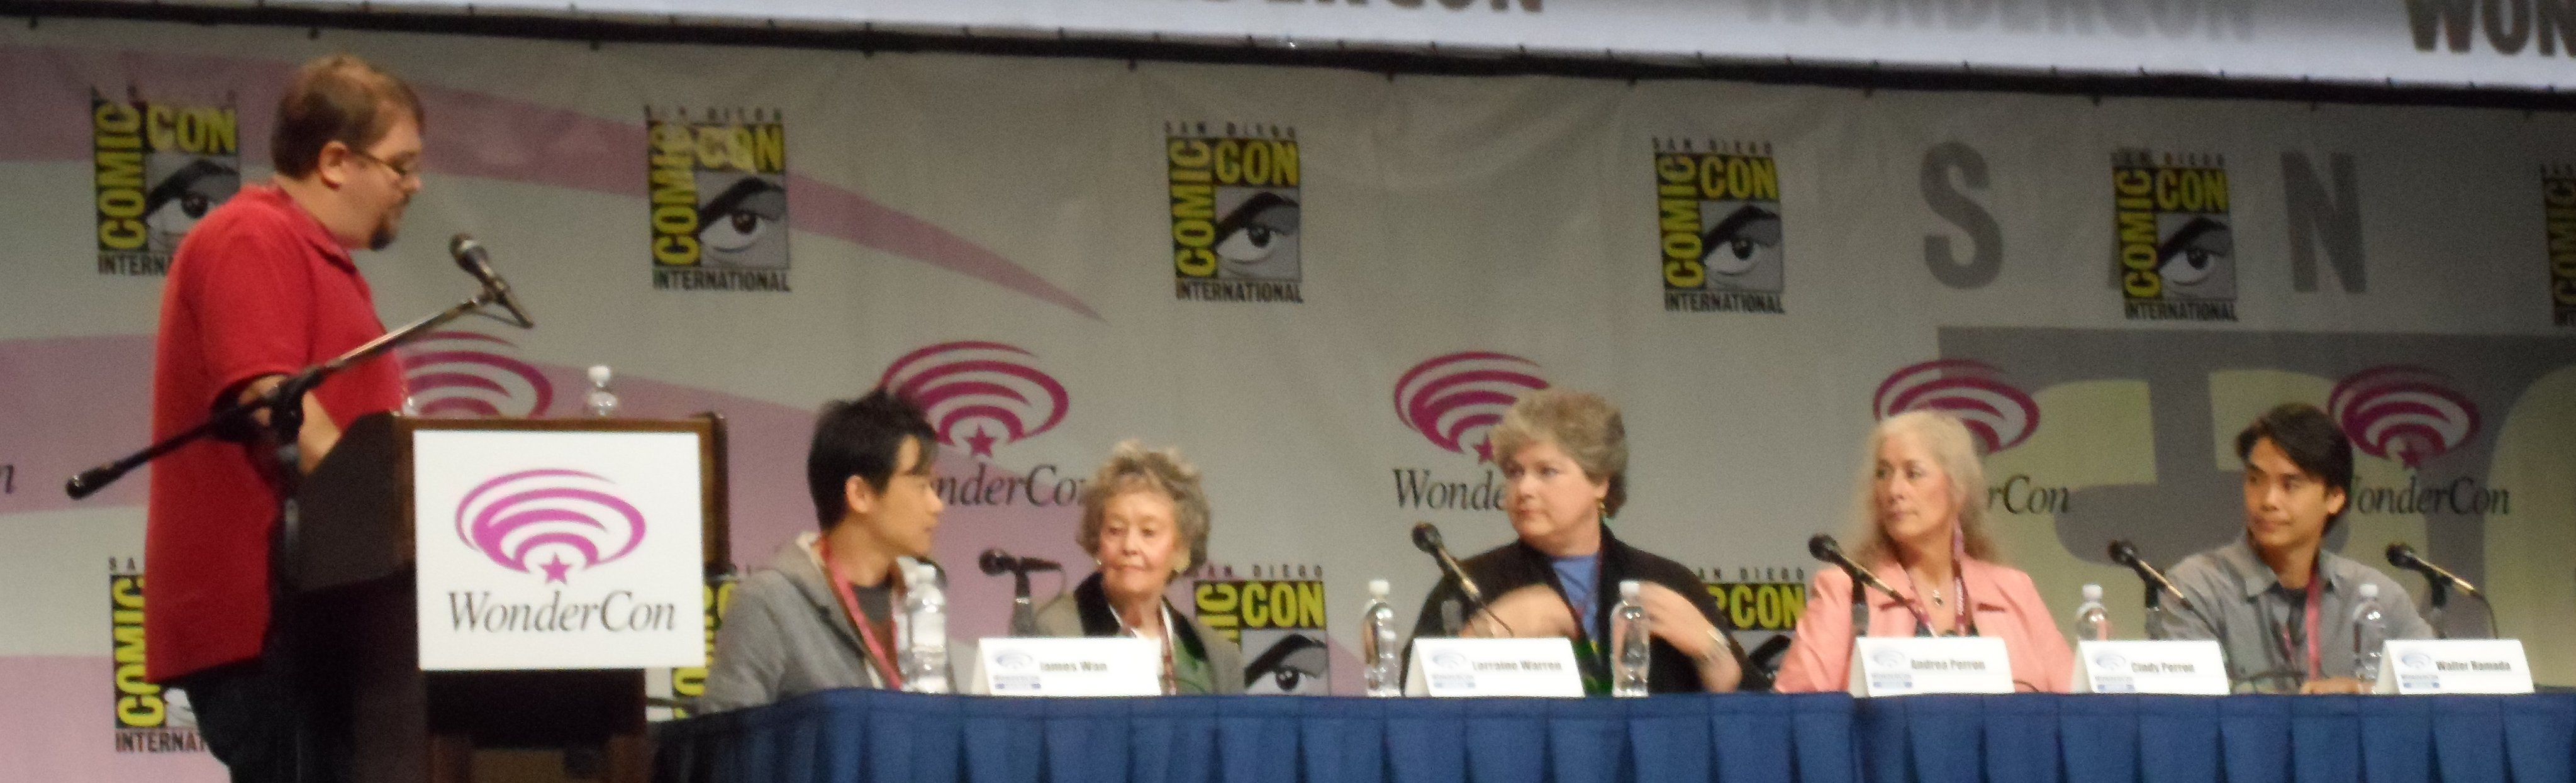 Wondercon The Conjuring